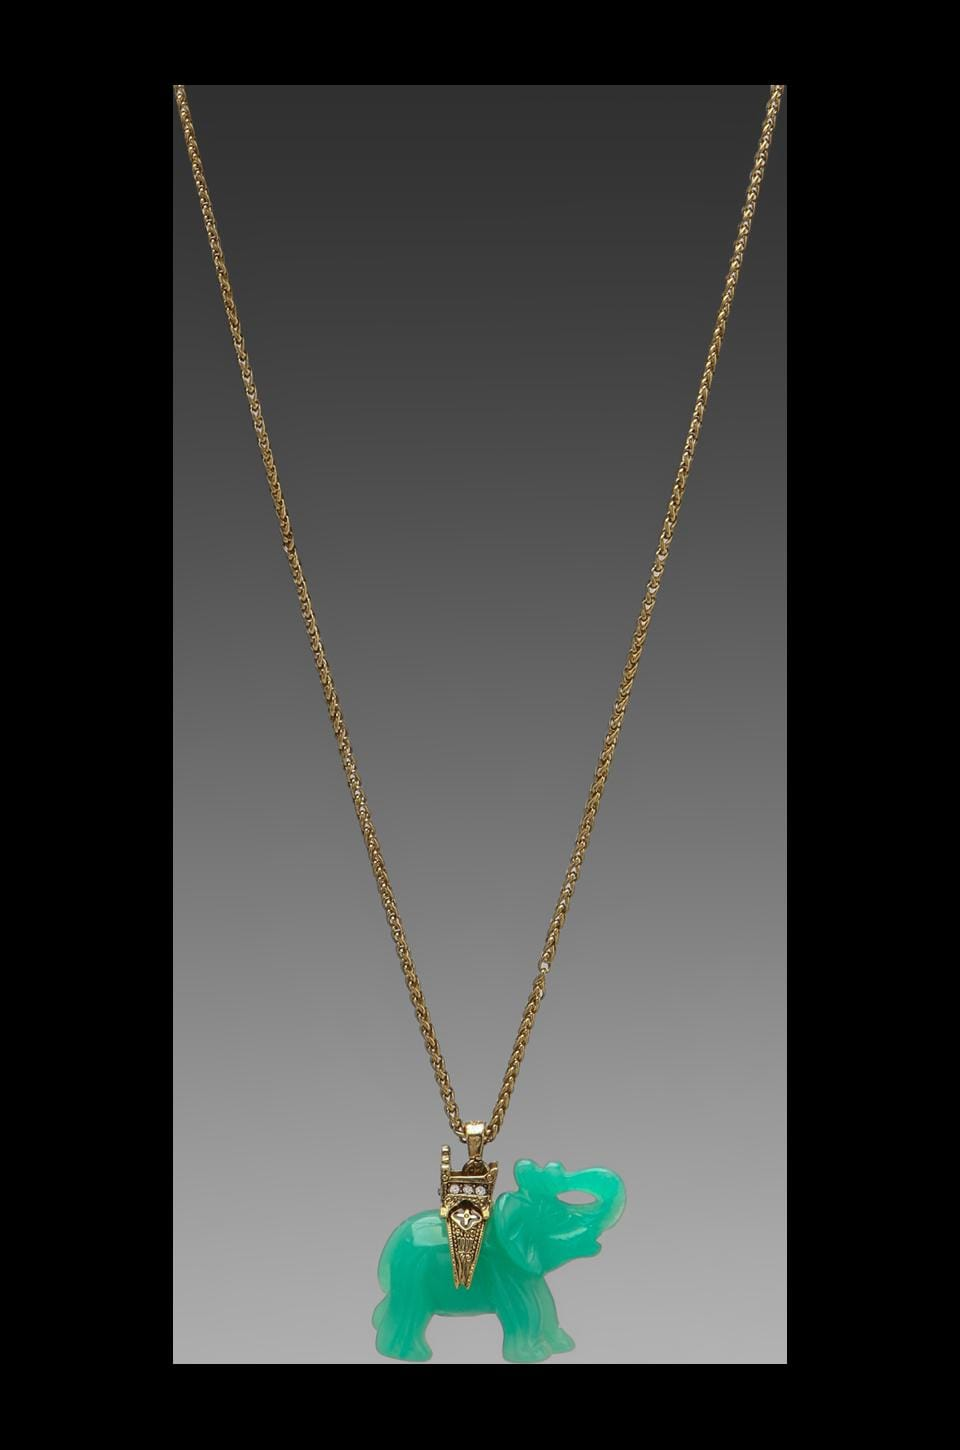 Kenneth Jay Lane Gold Chain and Elephant Necklace in Jade